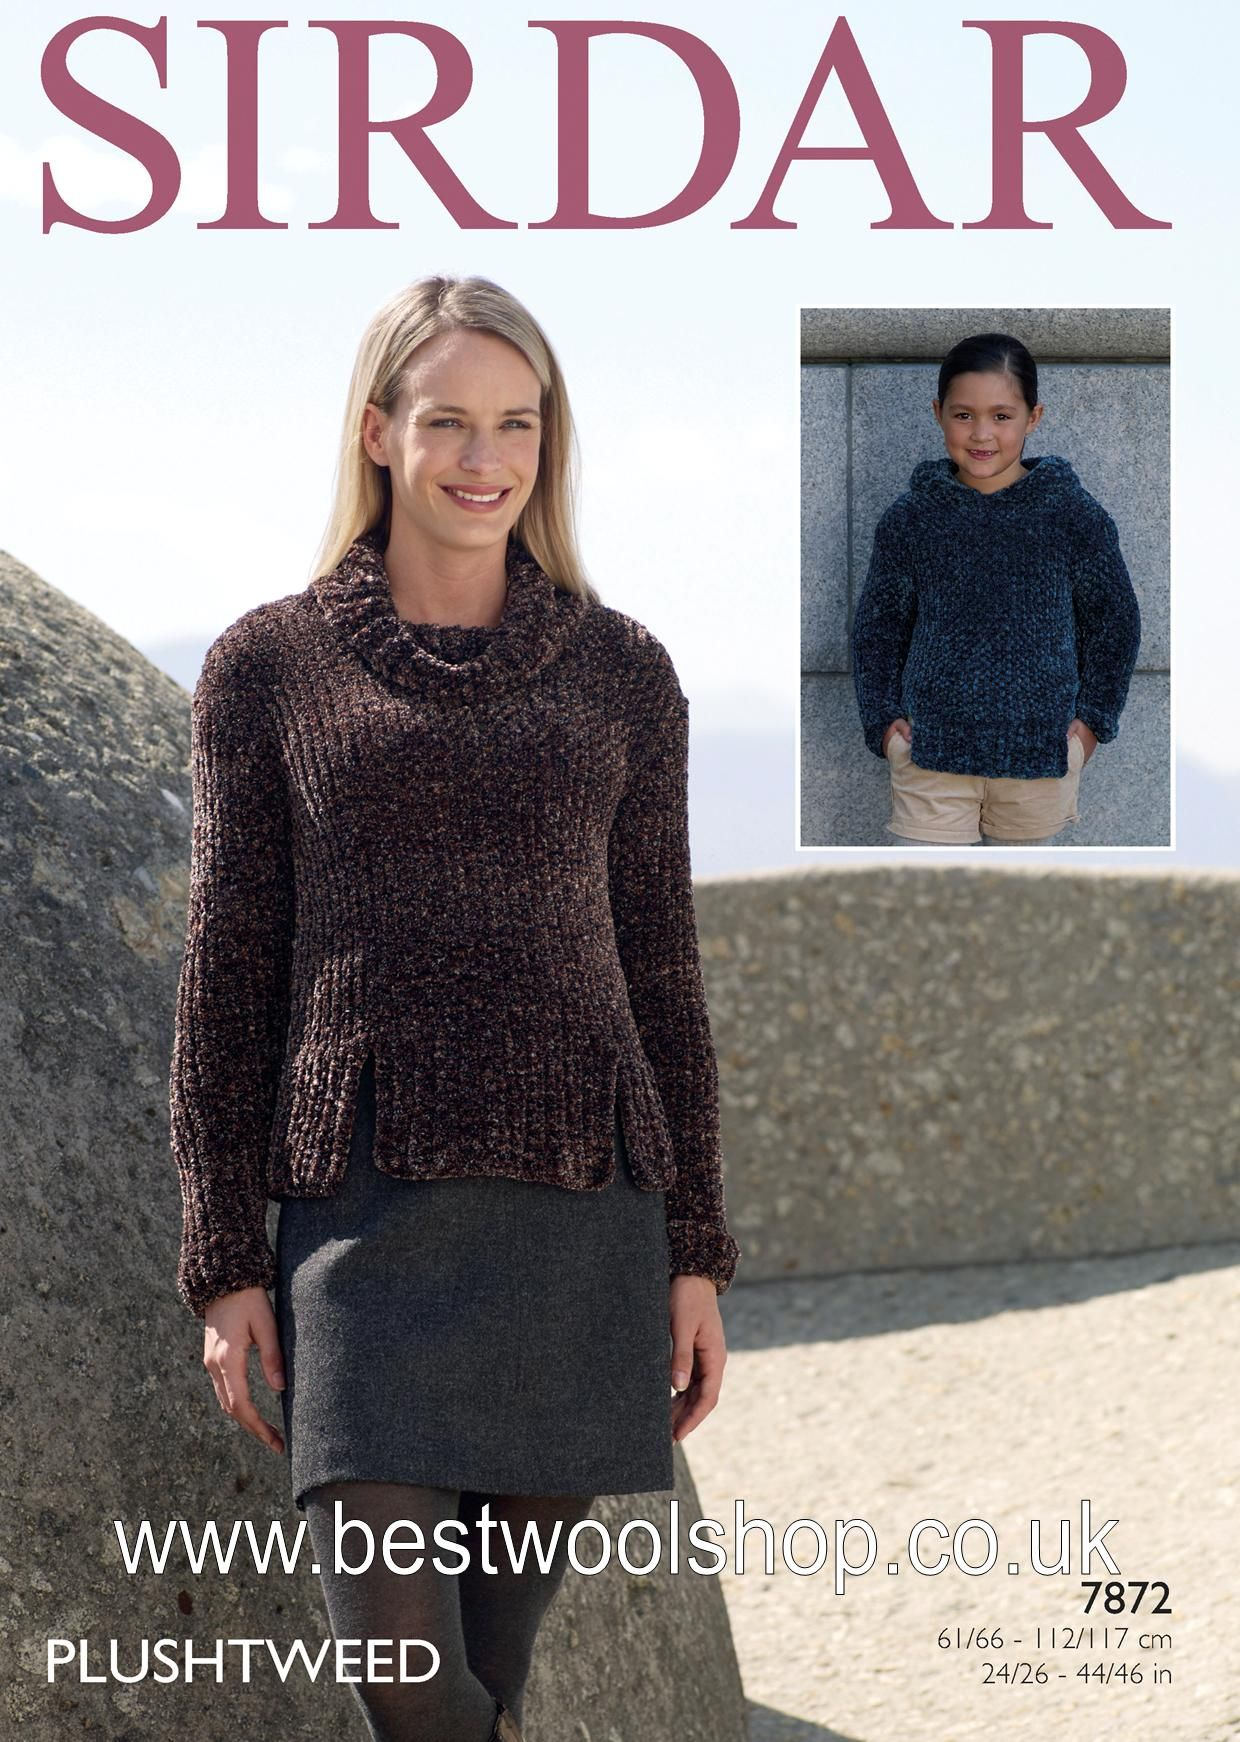 7872 - SIRDAR PLUSHTWEED SUPER CHUNKY COWL NECK & HOODED SWEATER ...